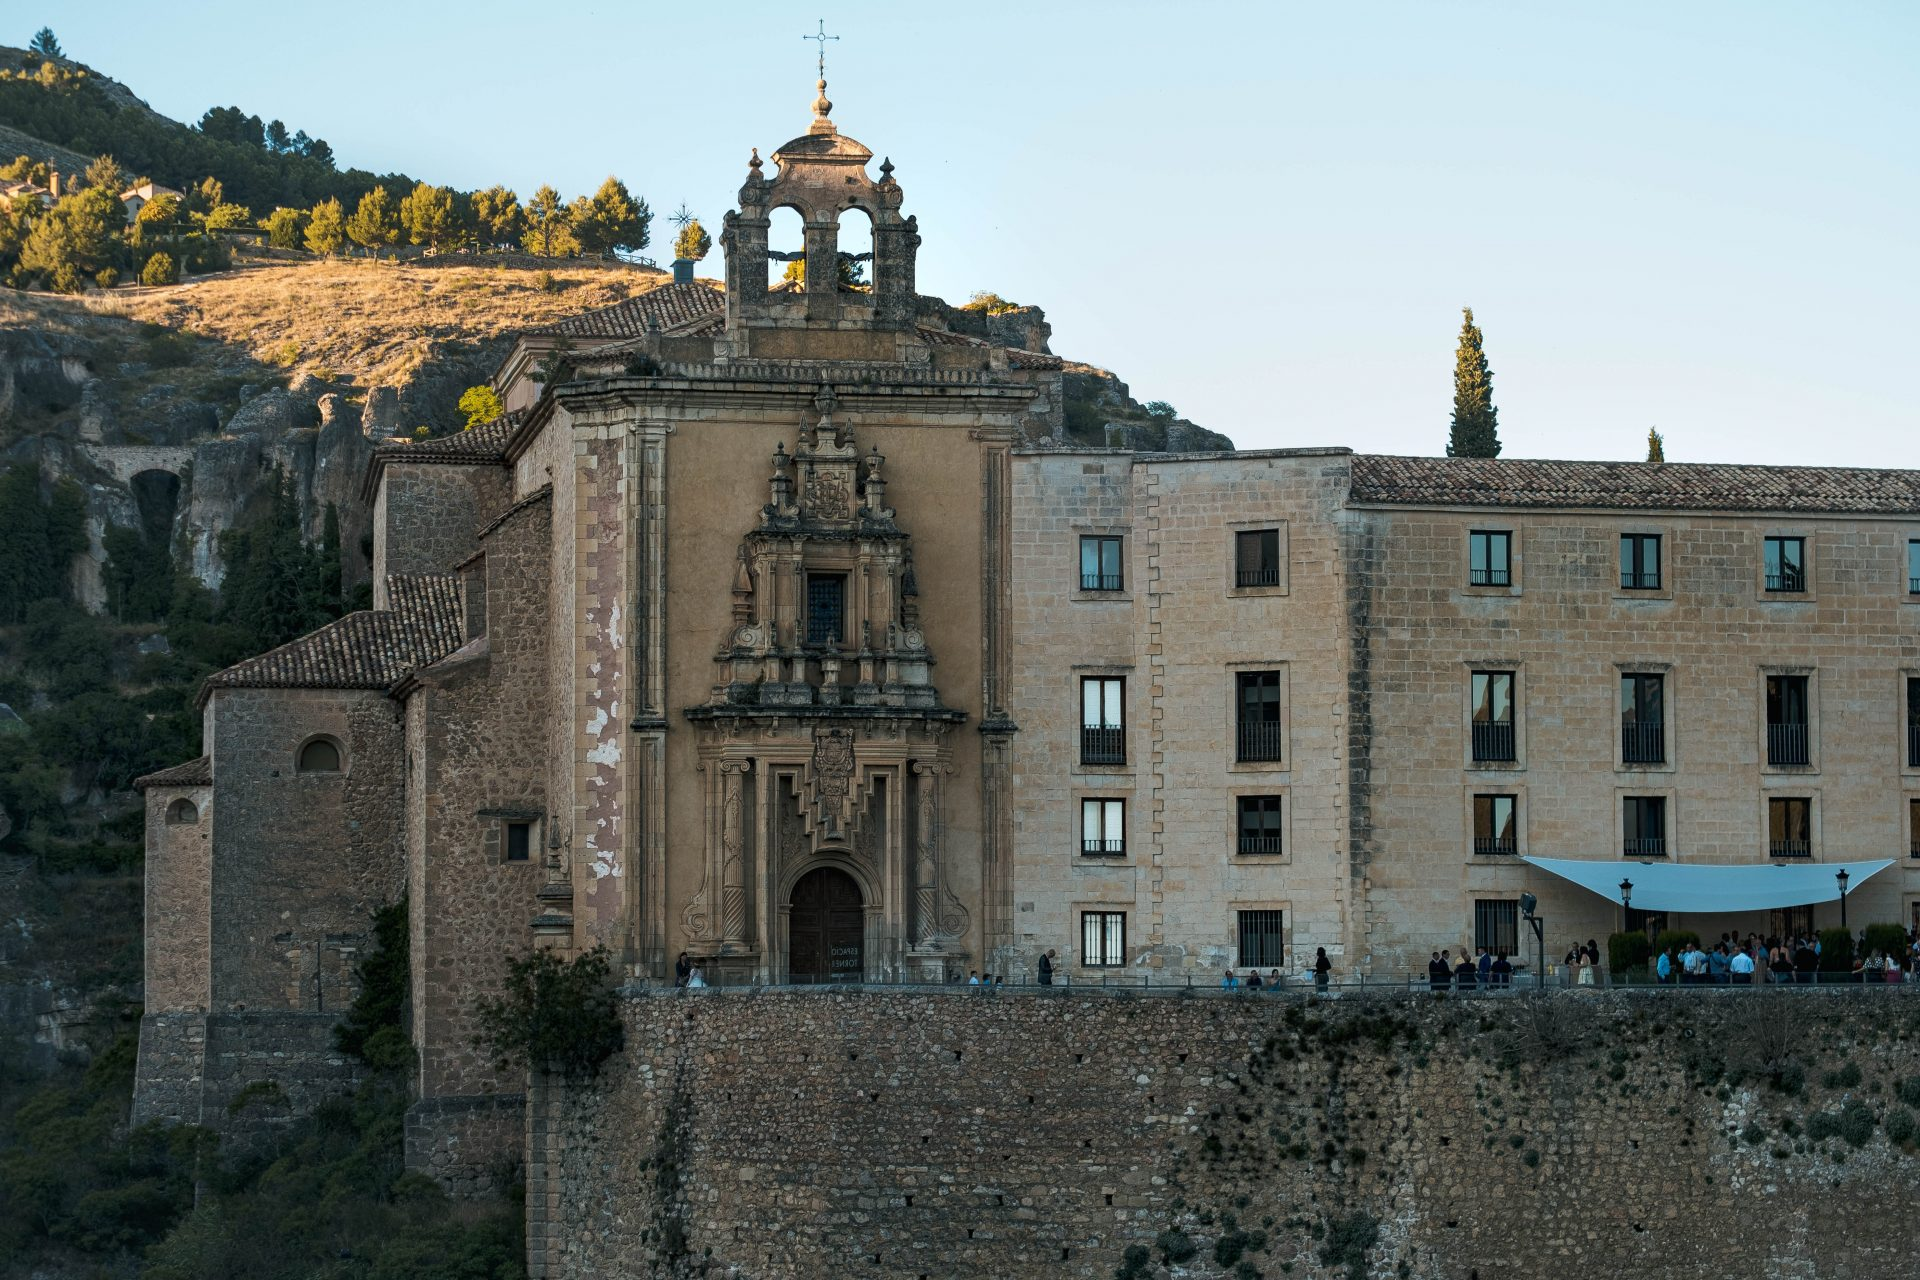 Facade of the Paradore de Cuenca photo by Jo Kassis